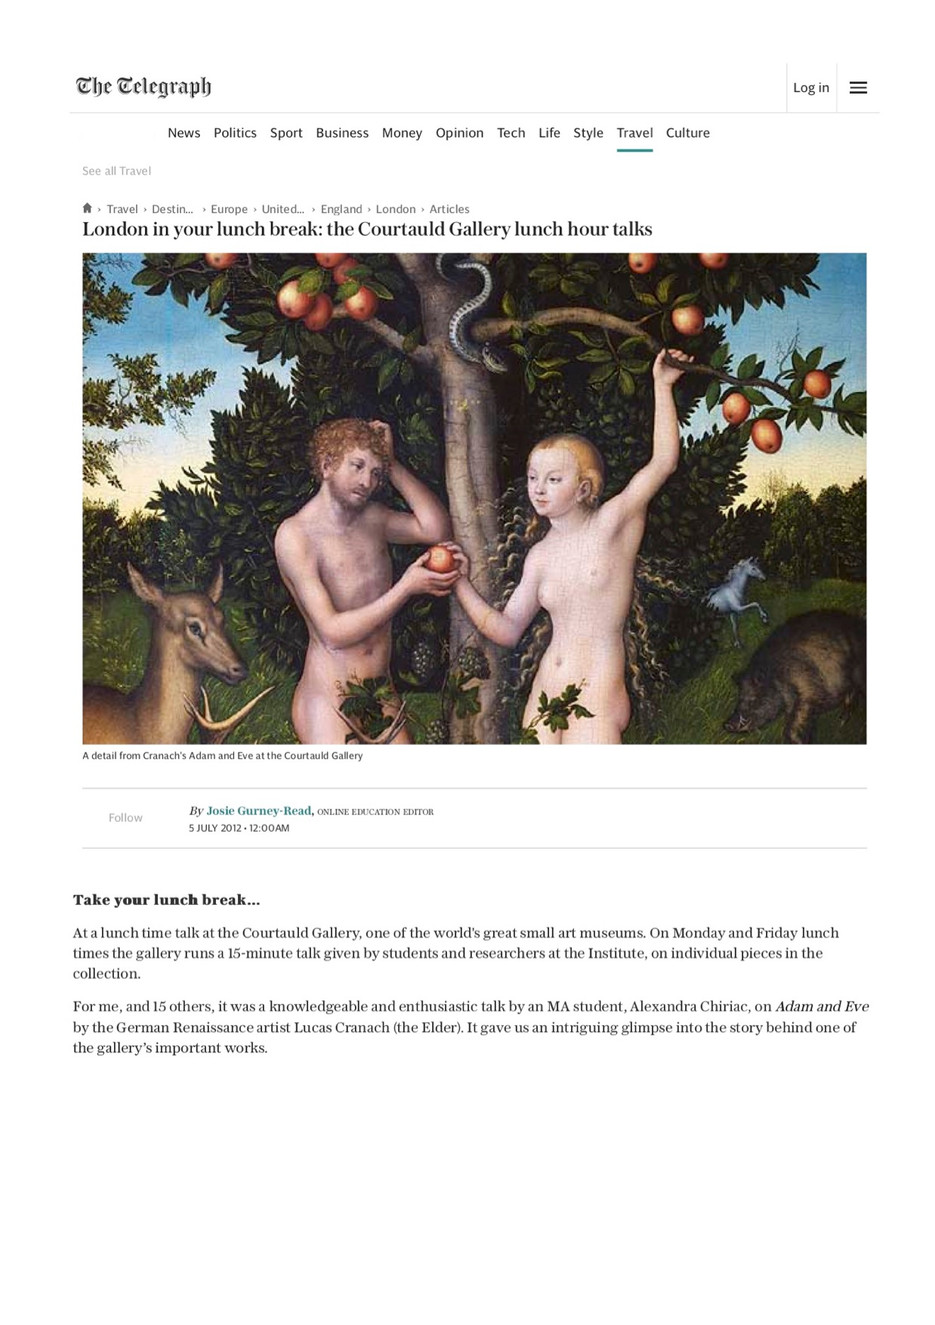 Review of a talk at the Courtauld Gallery